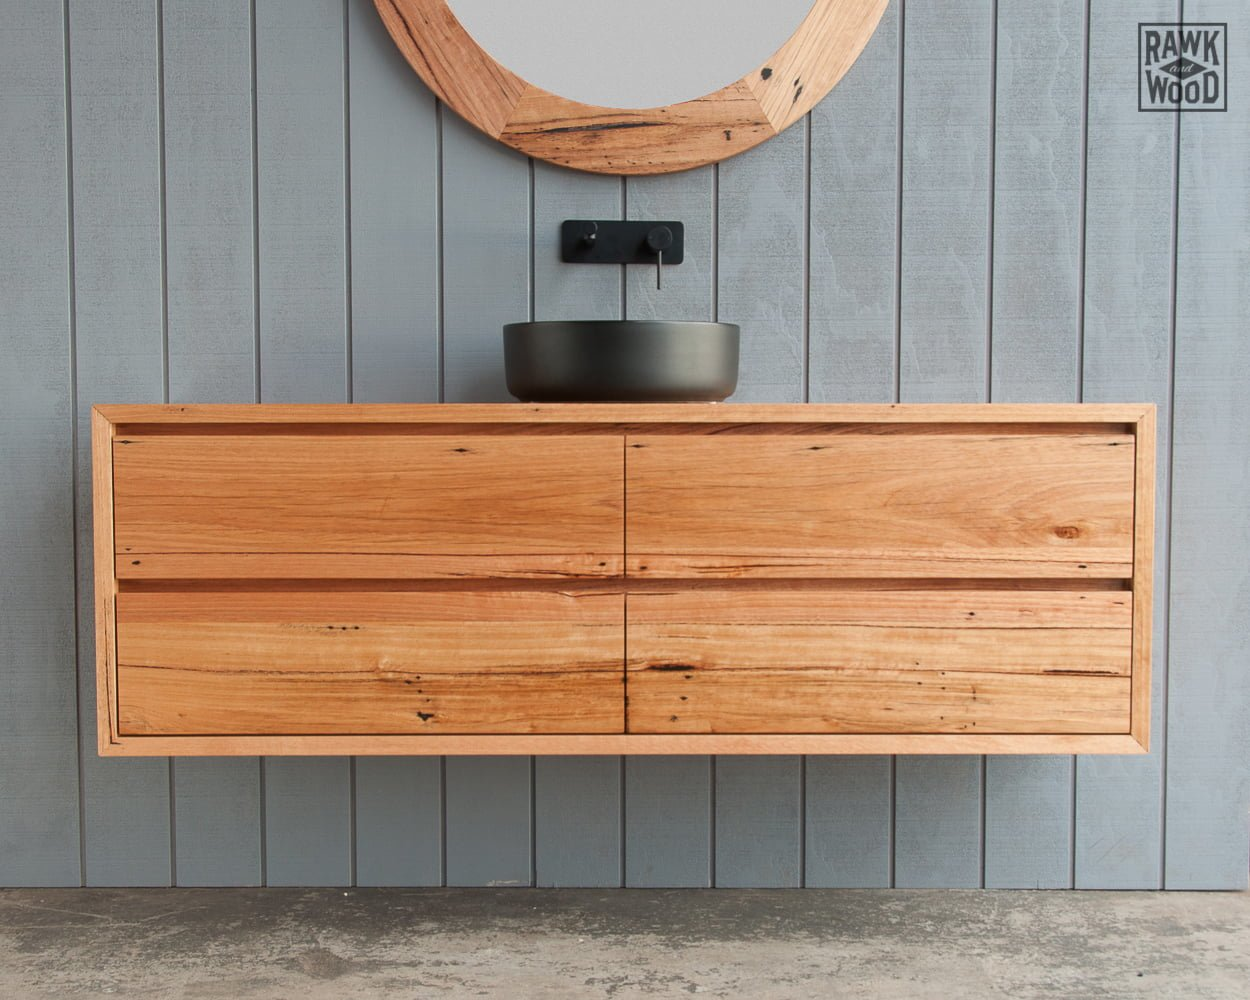 reclaimed-wood-bathroom-vanity, custom-made in Melbourne by Rawk and Wood